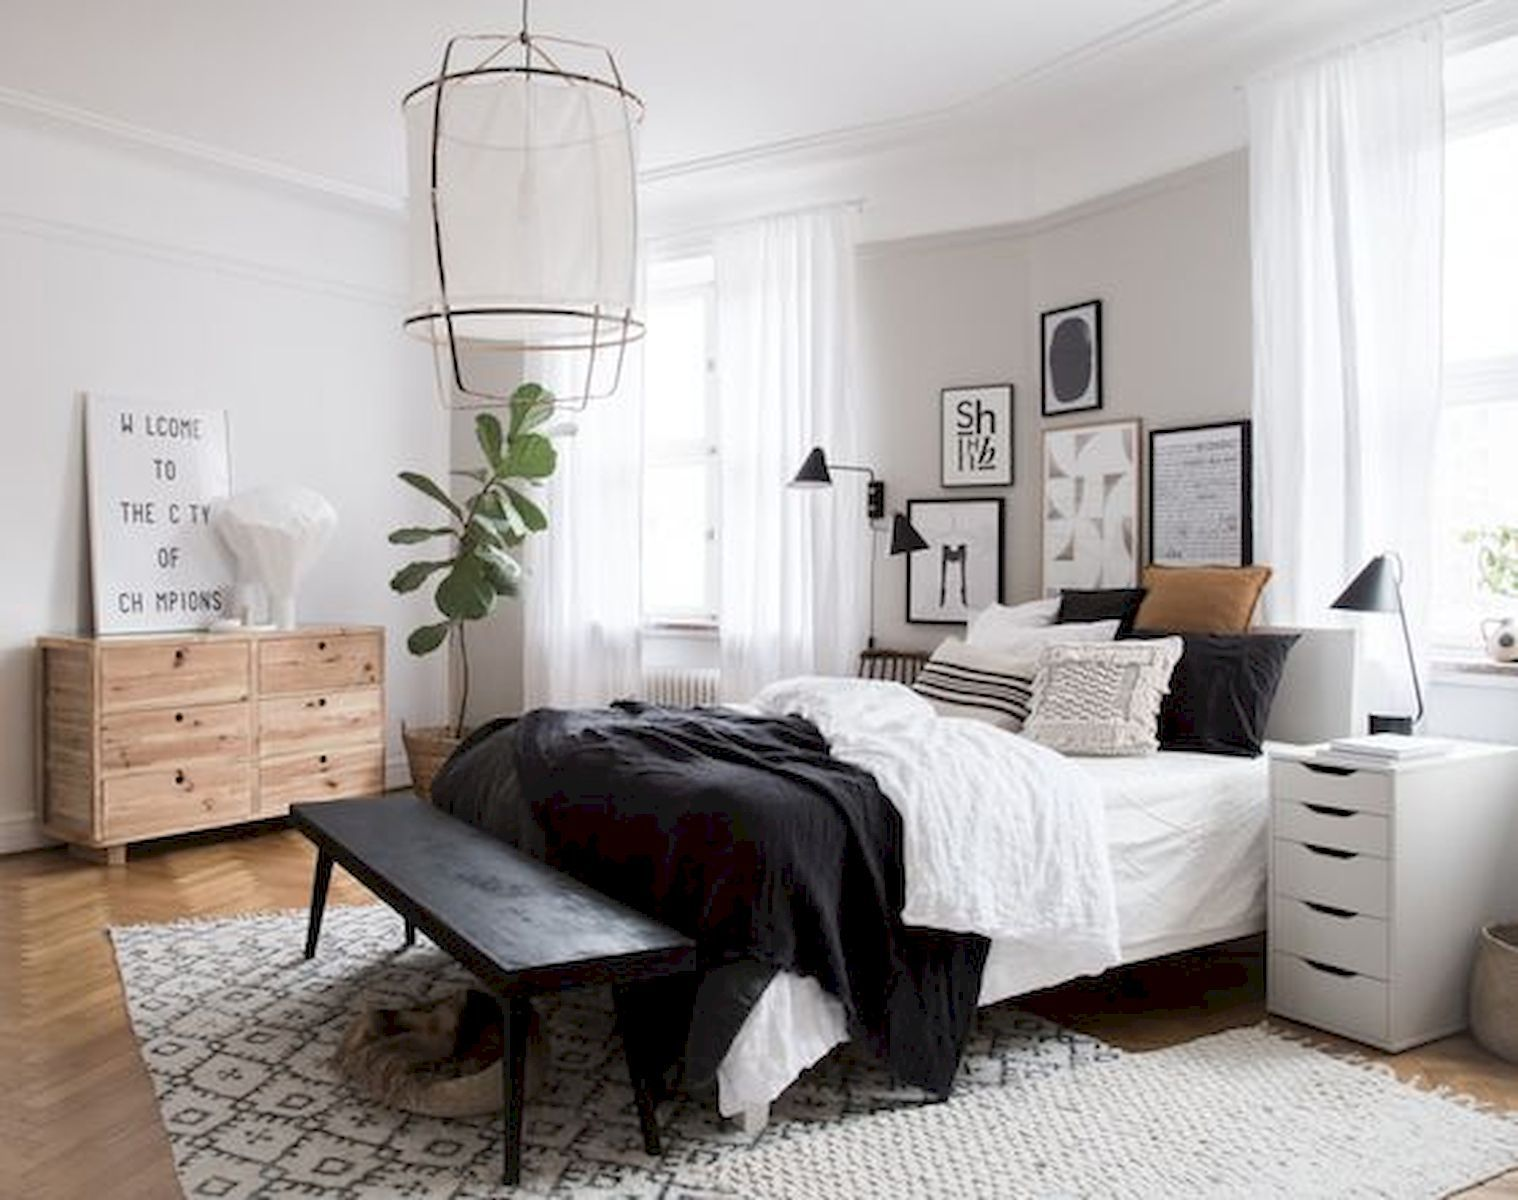 50 Best Rug Bedroom Decor Ideas images